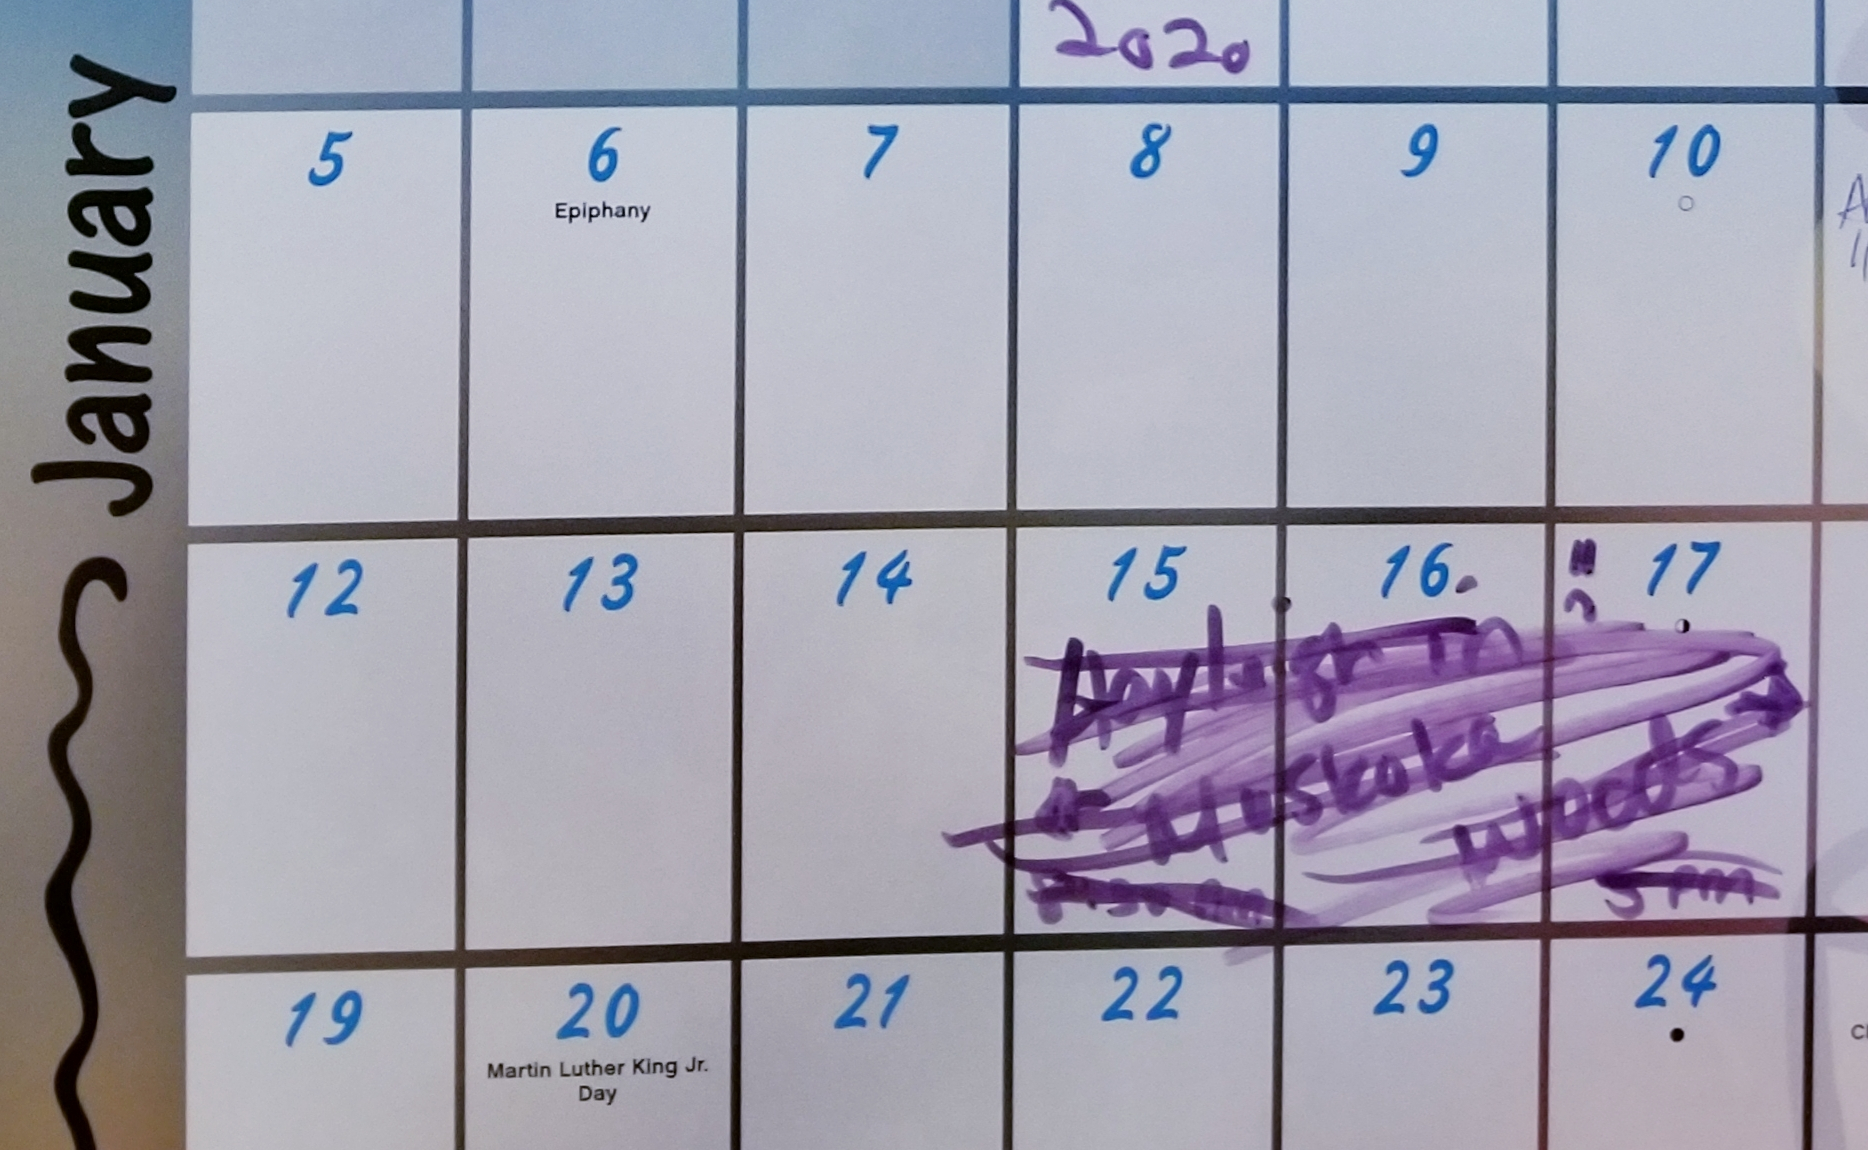 Calendar showing cancelled trip dates.